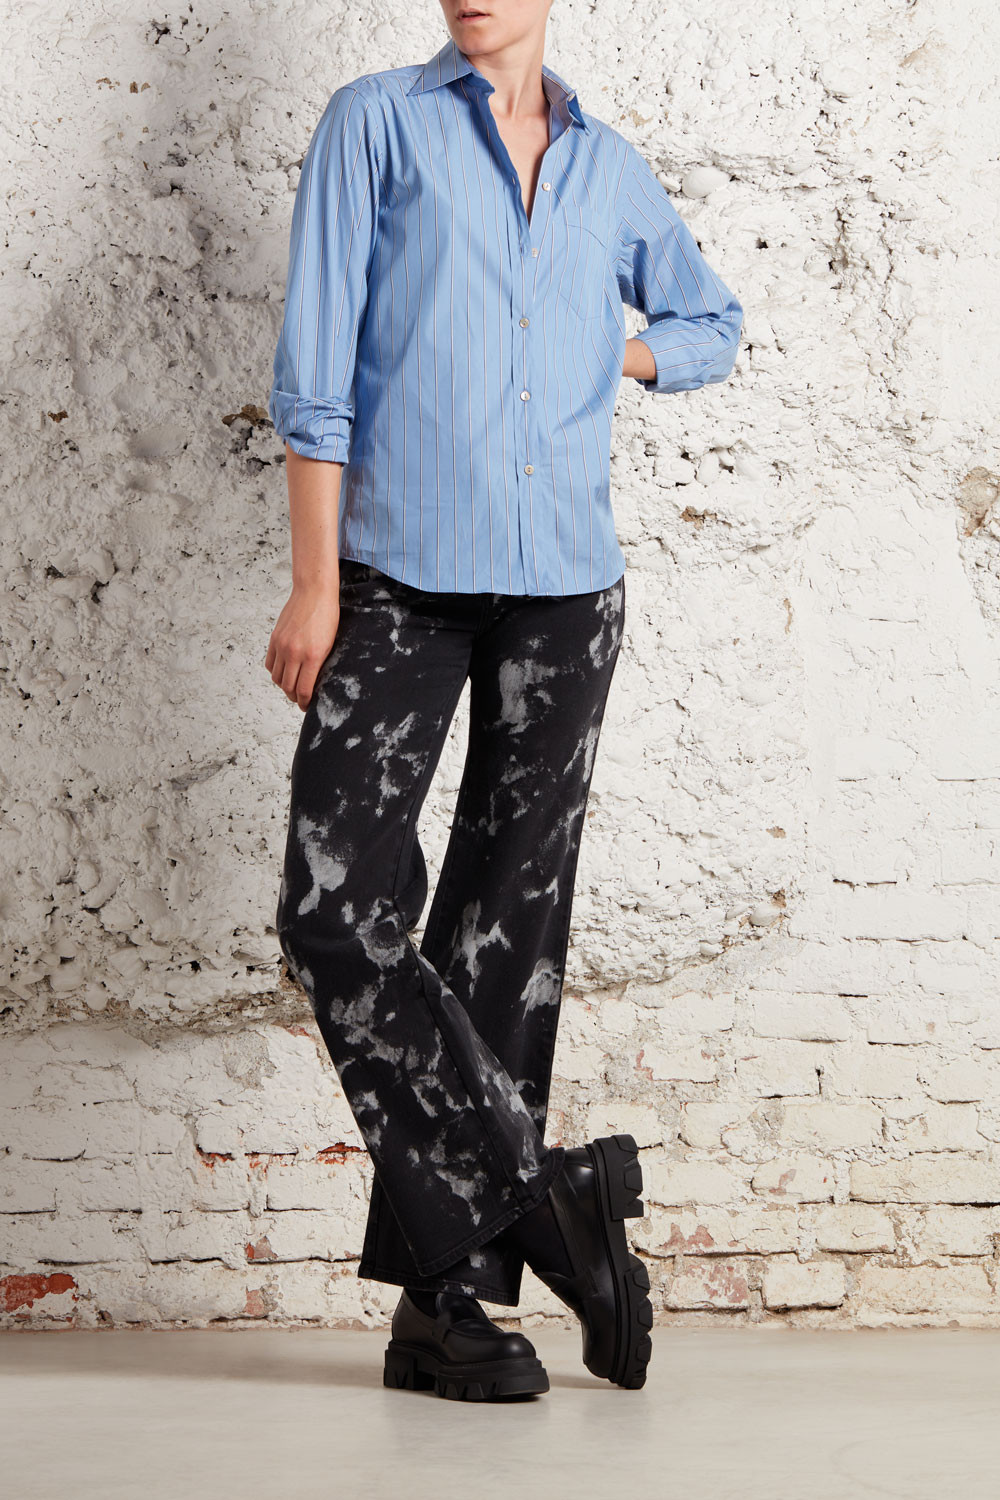 SHIRT WITH POCKET - CLIOD381051